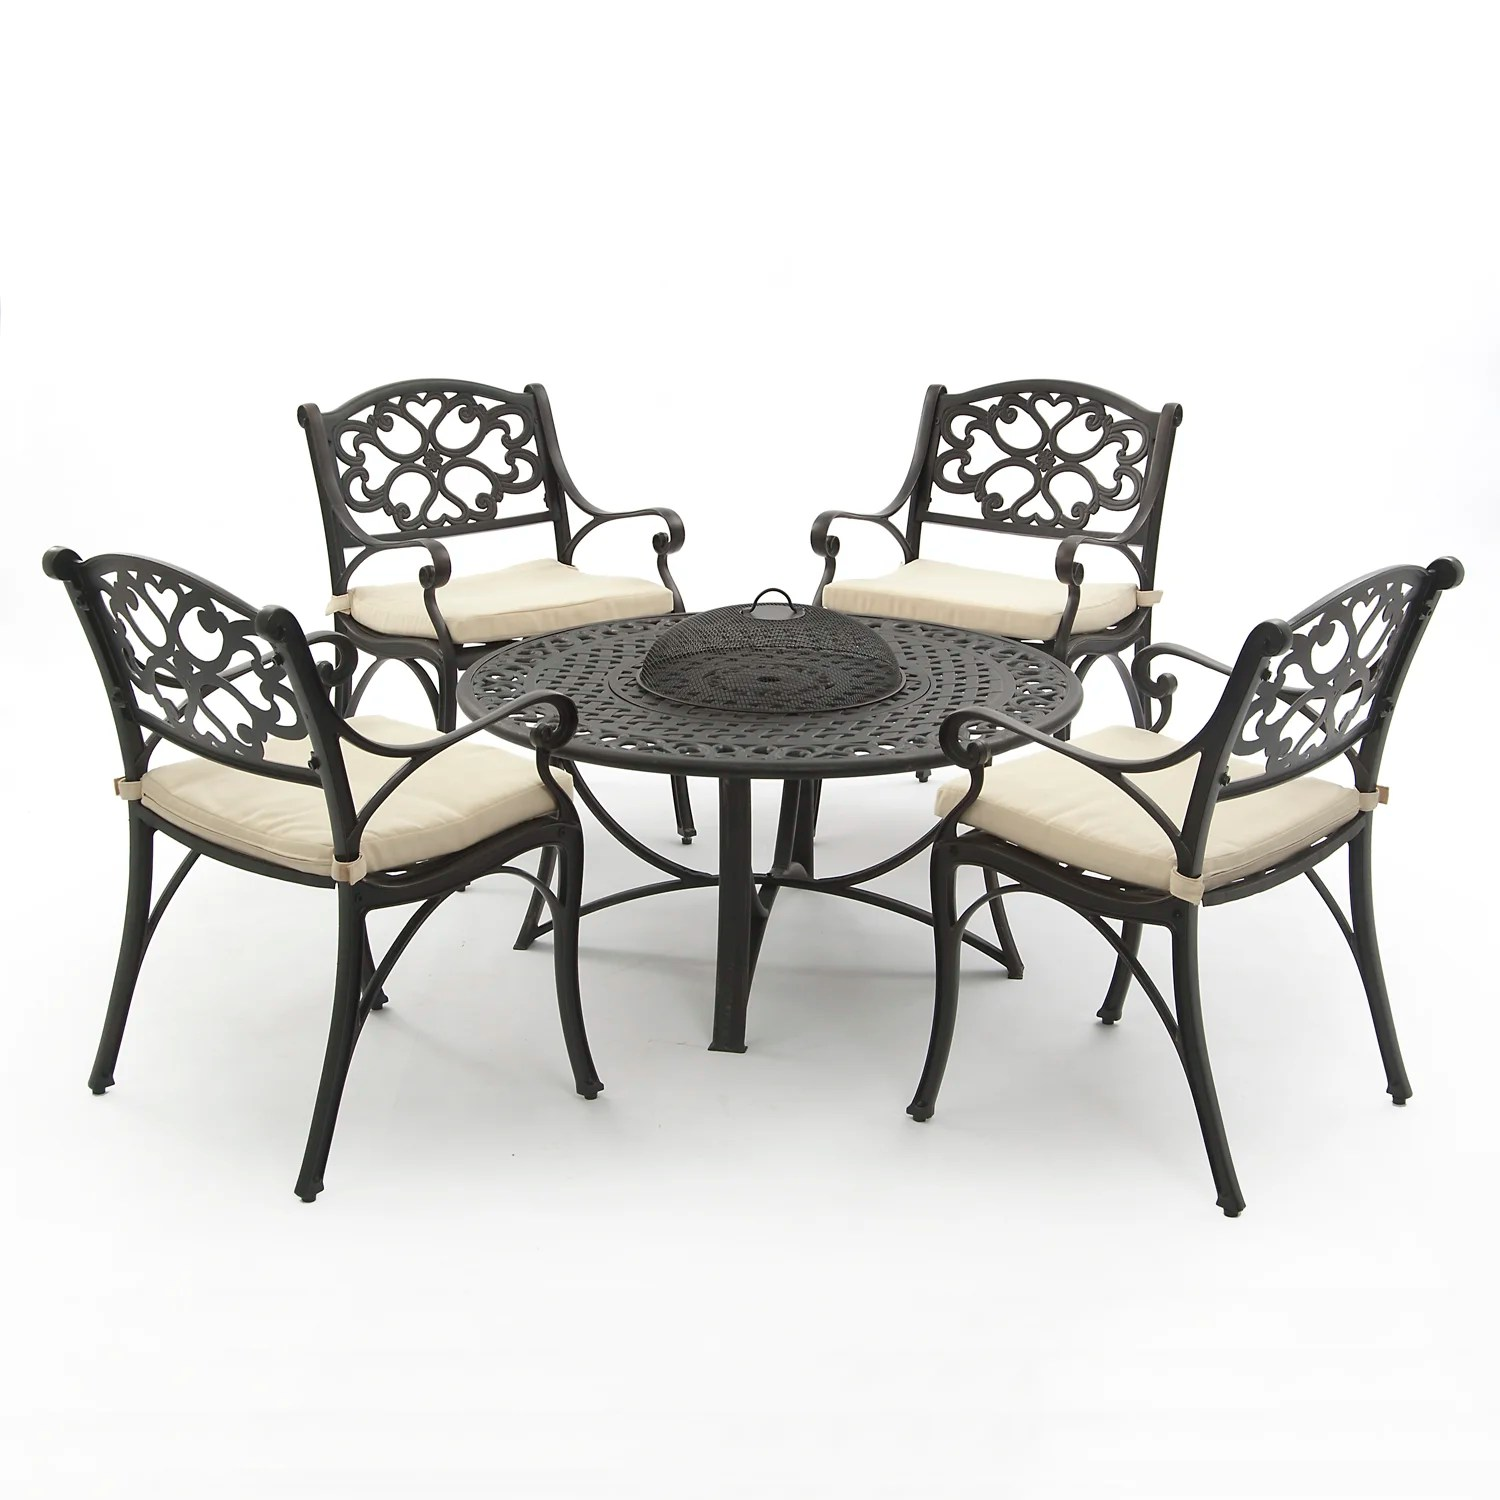 SunTime Outdoor Living Oregon 5 Piece Dining Set with ... on Suntime Outdoor Living  id=94964